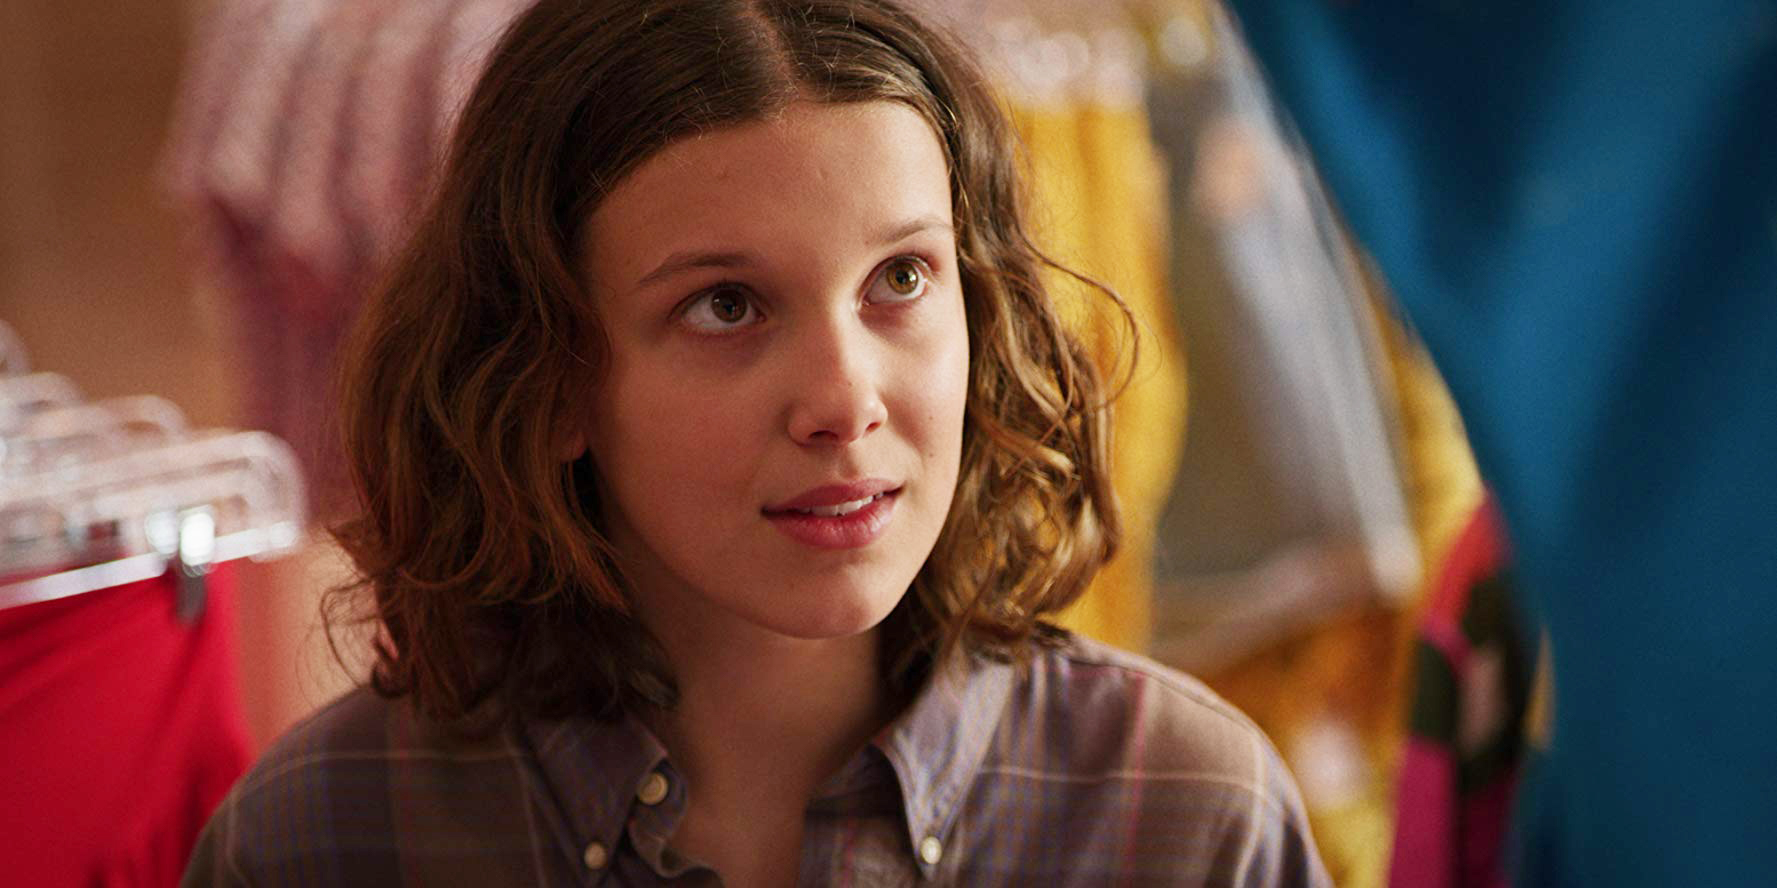 Millie Bobby Brown protagonista del film Netflix A Time Lost